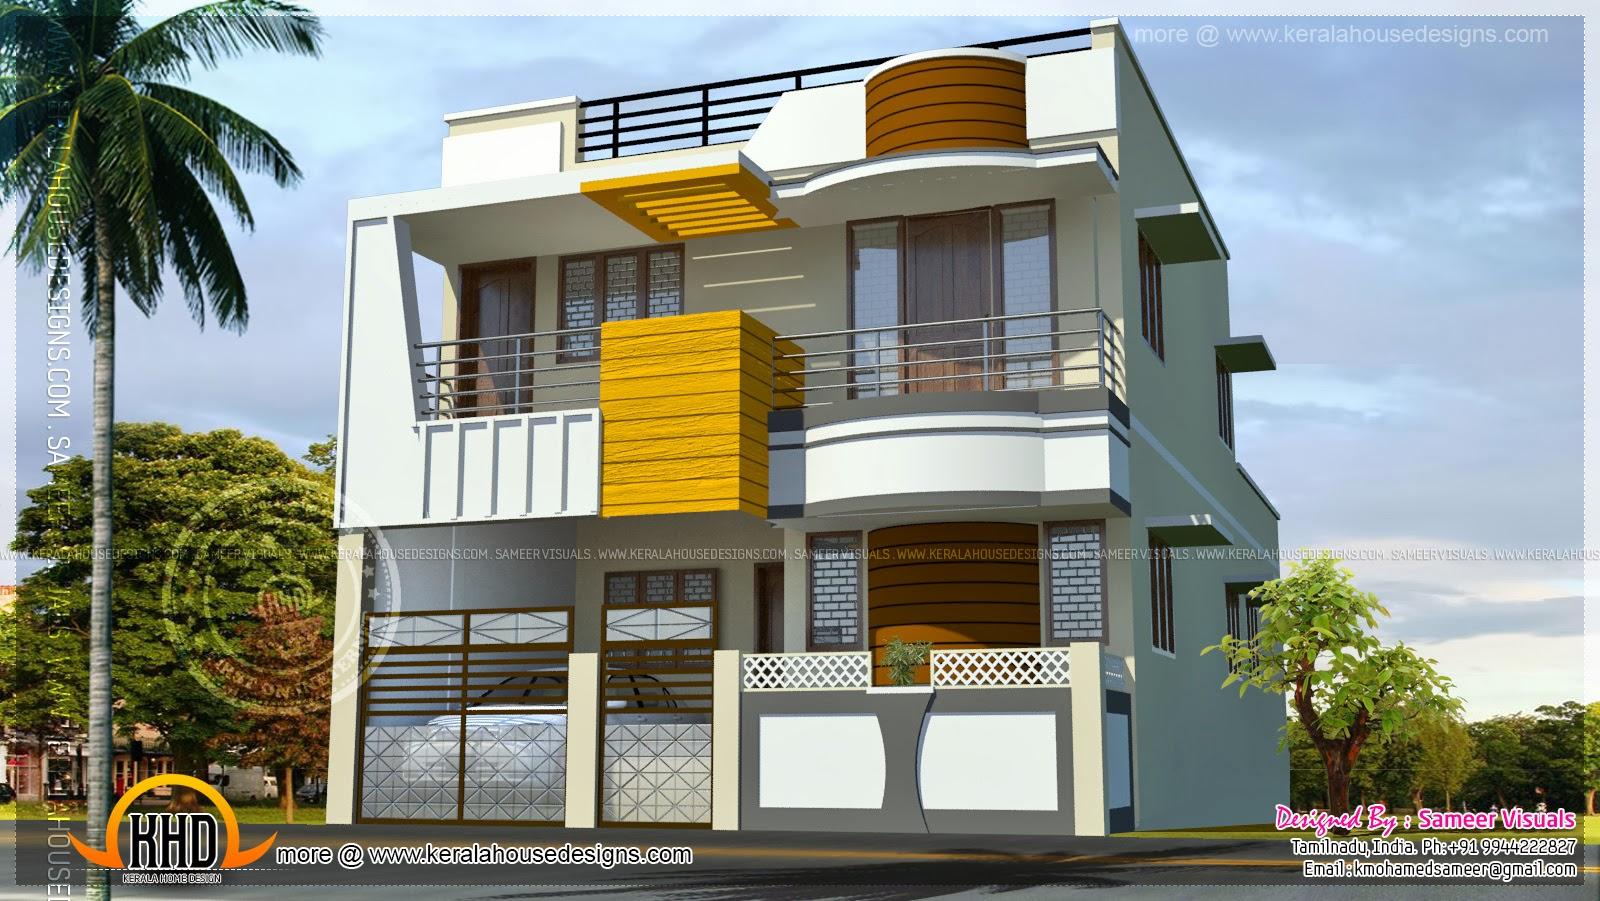 Double storied modern south indian home kerala home for Modern small home designs india